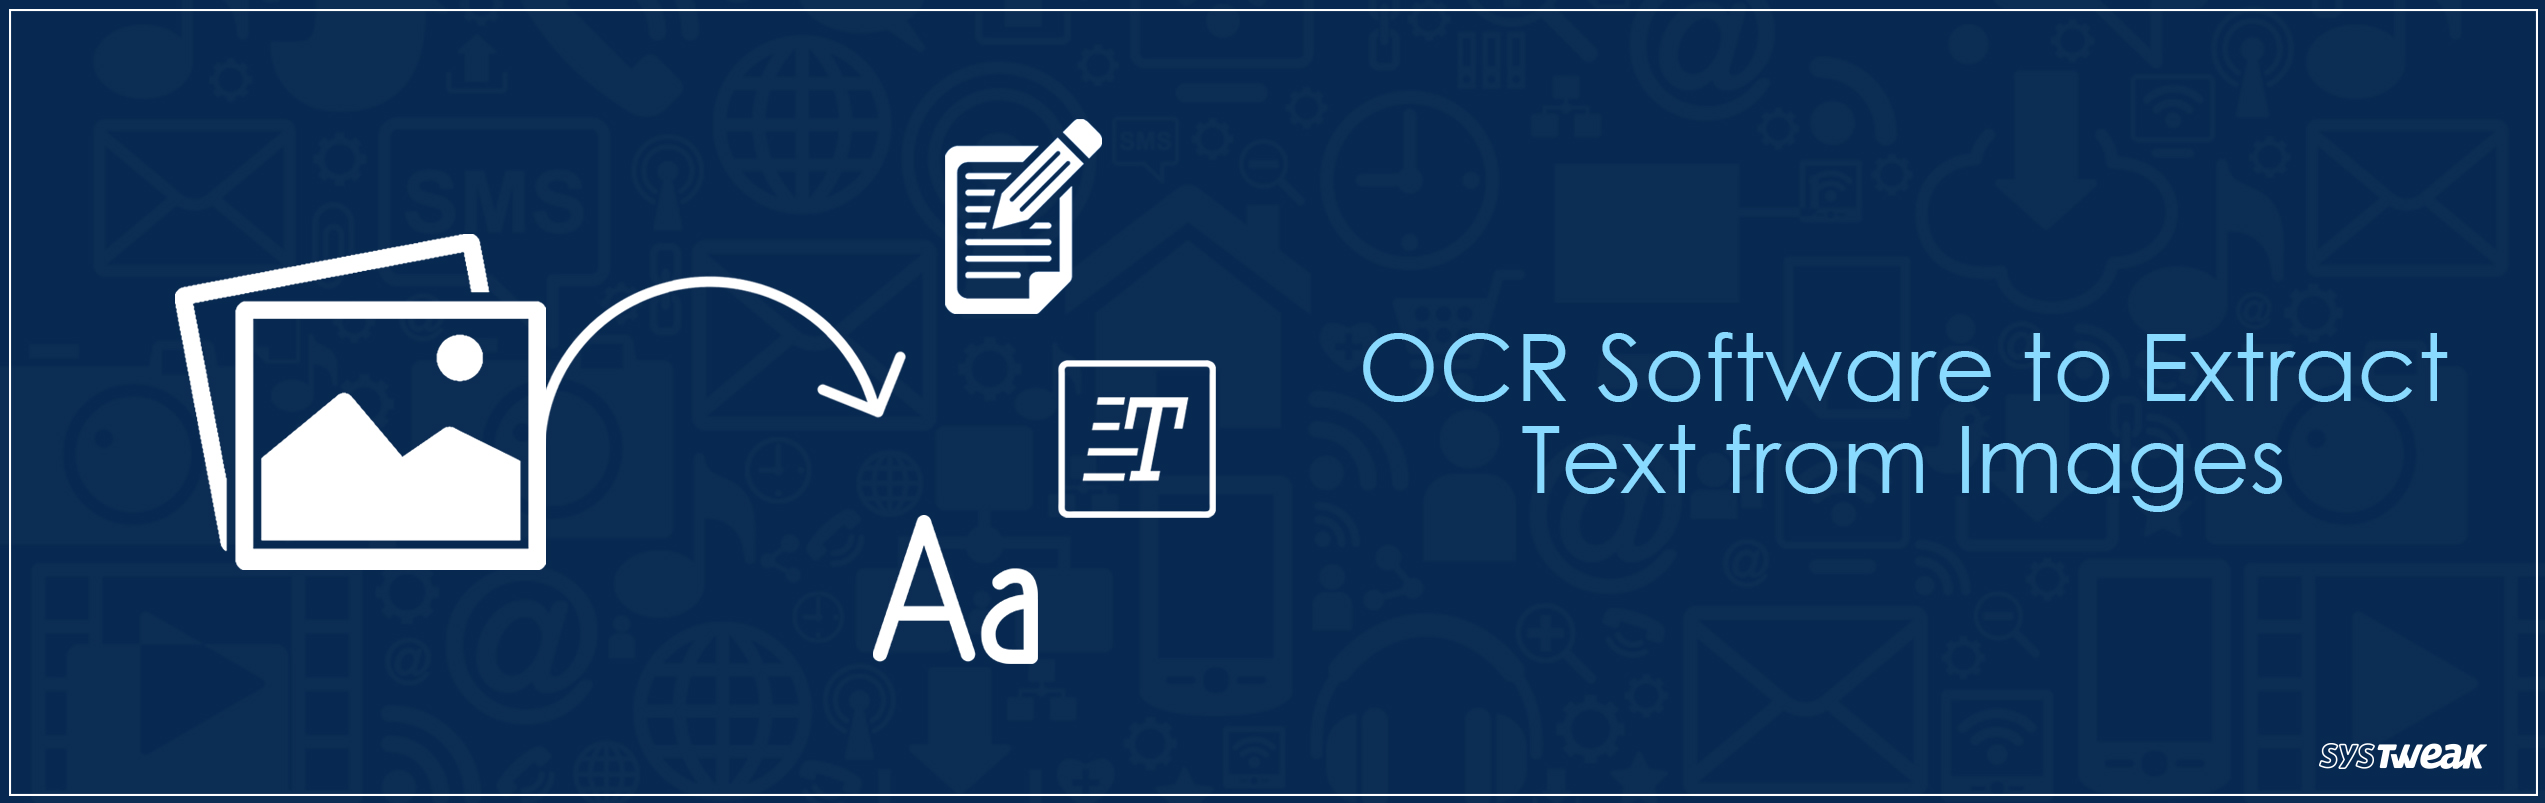 Best OCR Software to Extract Text from Images